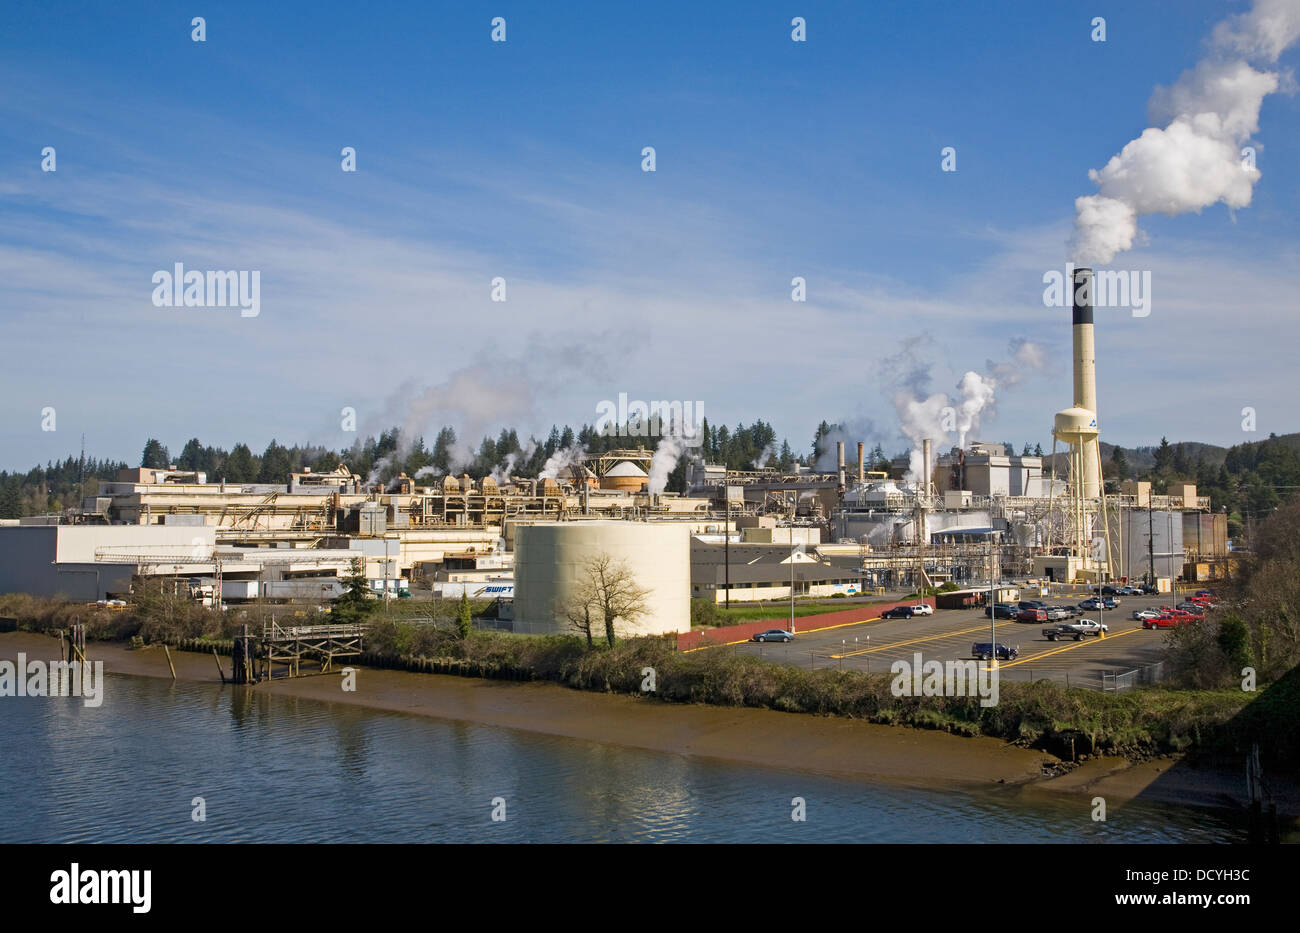 Paper mill stock photos paper mill stock images alamy a large georgia pacific pulp and paper mill along the yaquina river in toledo oregon biocorpaavc Images